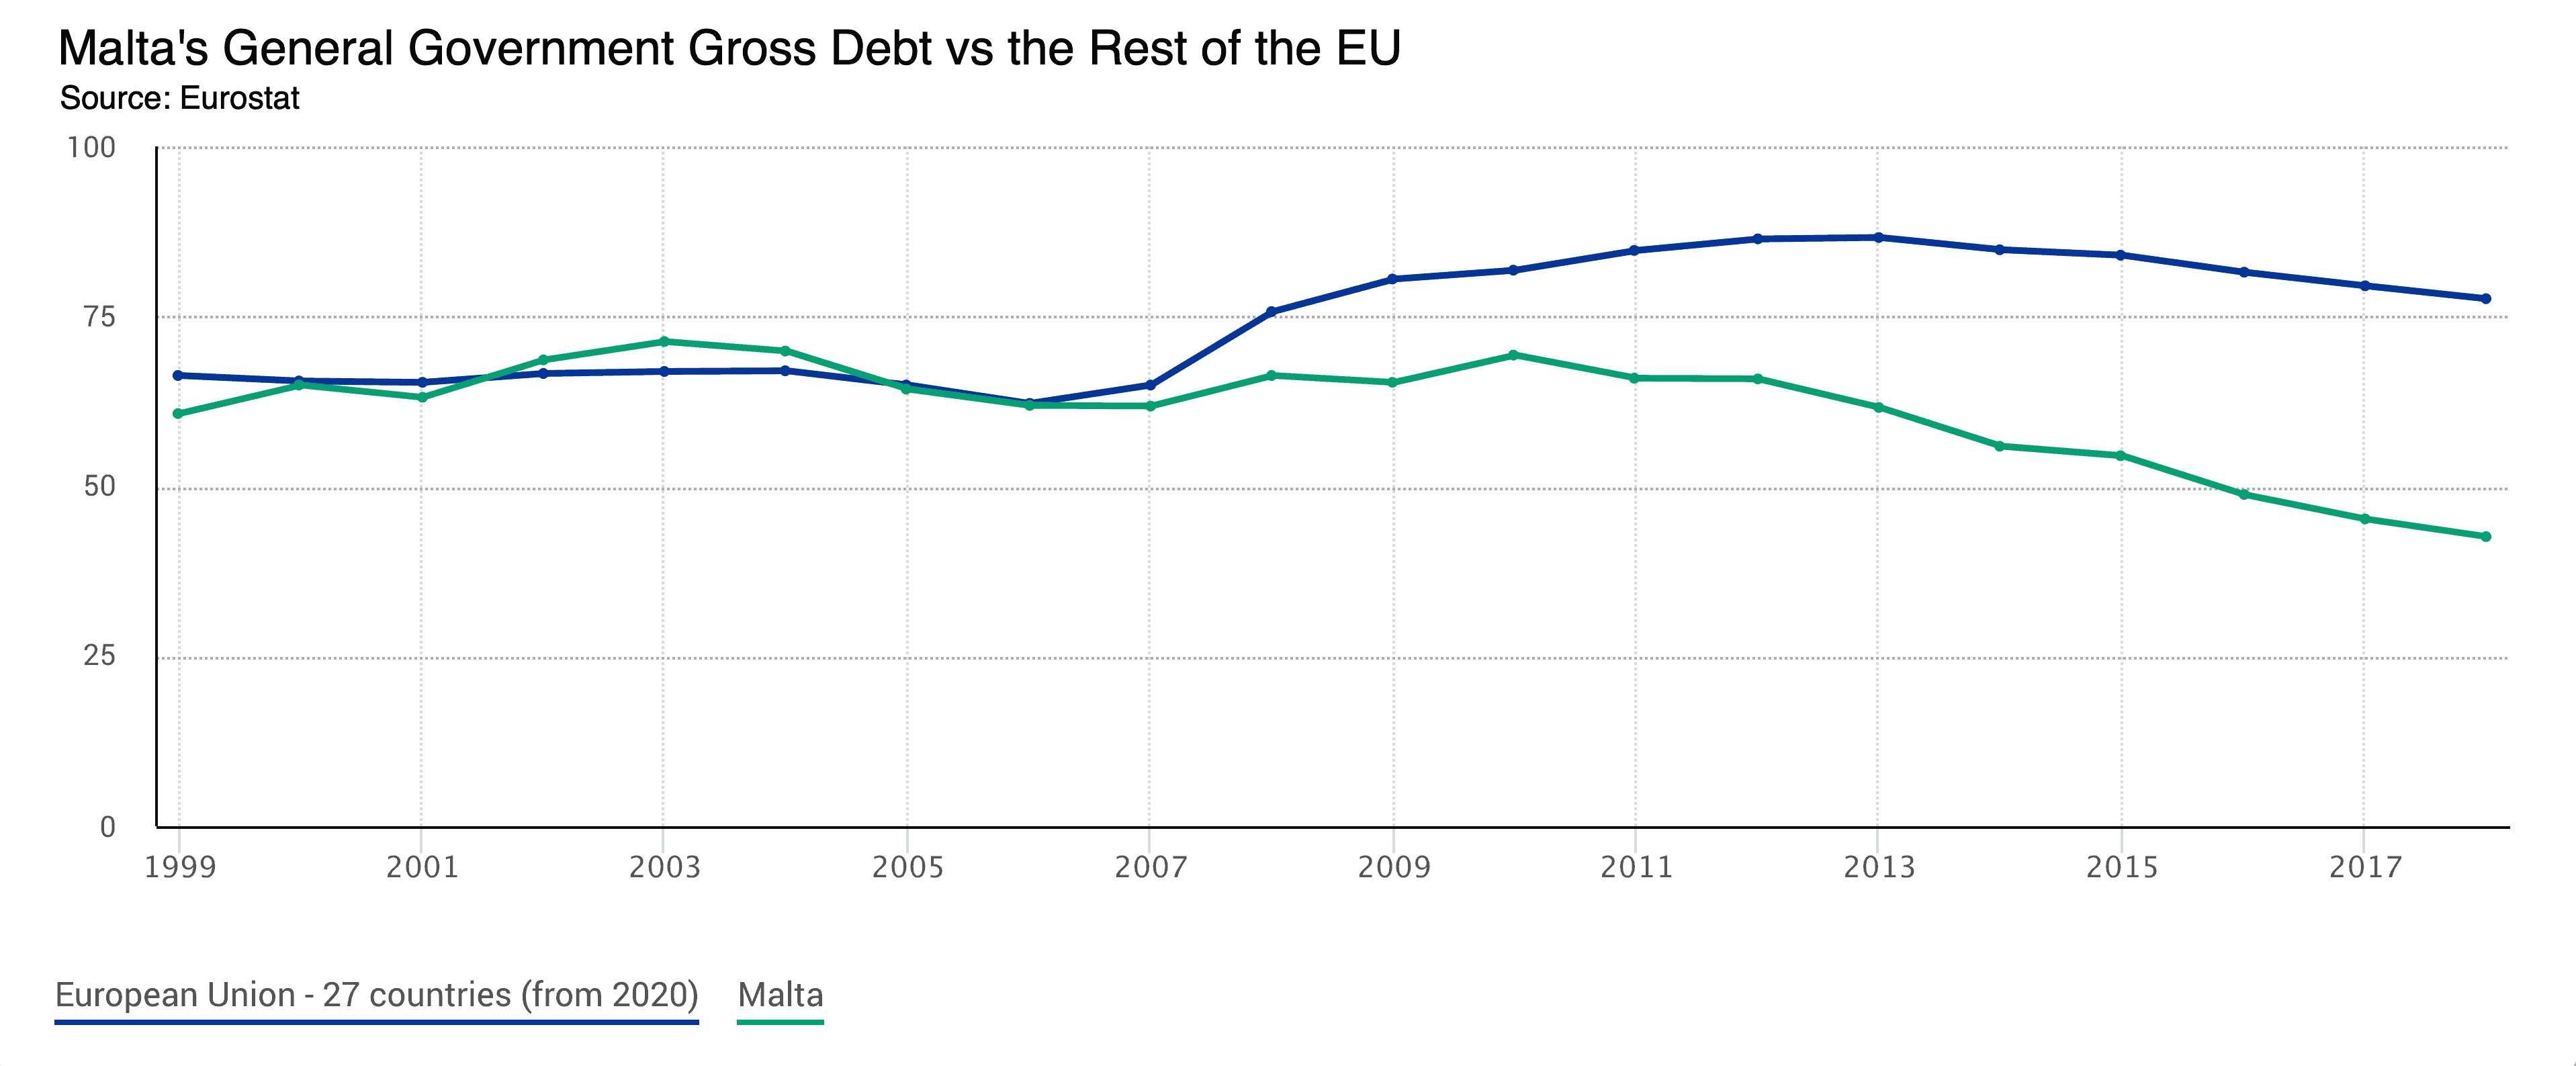 Malta's gross debt compared the the EU over time, 21st century